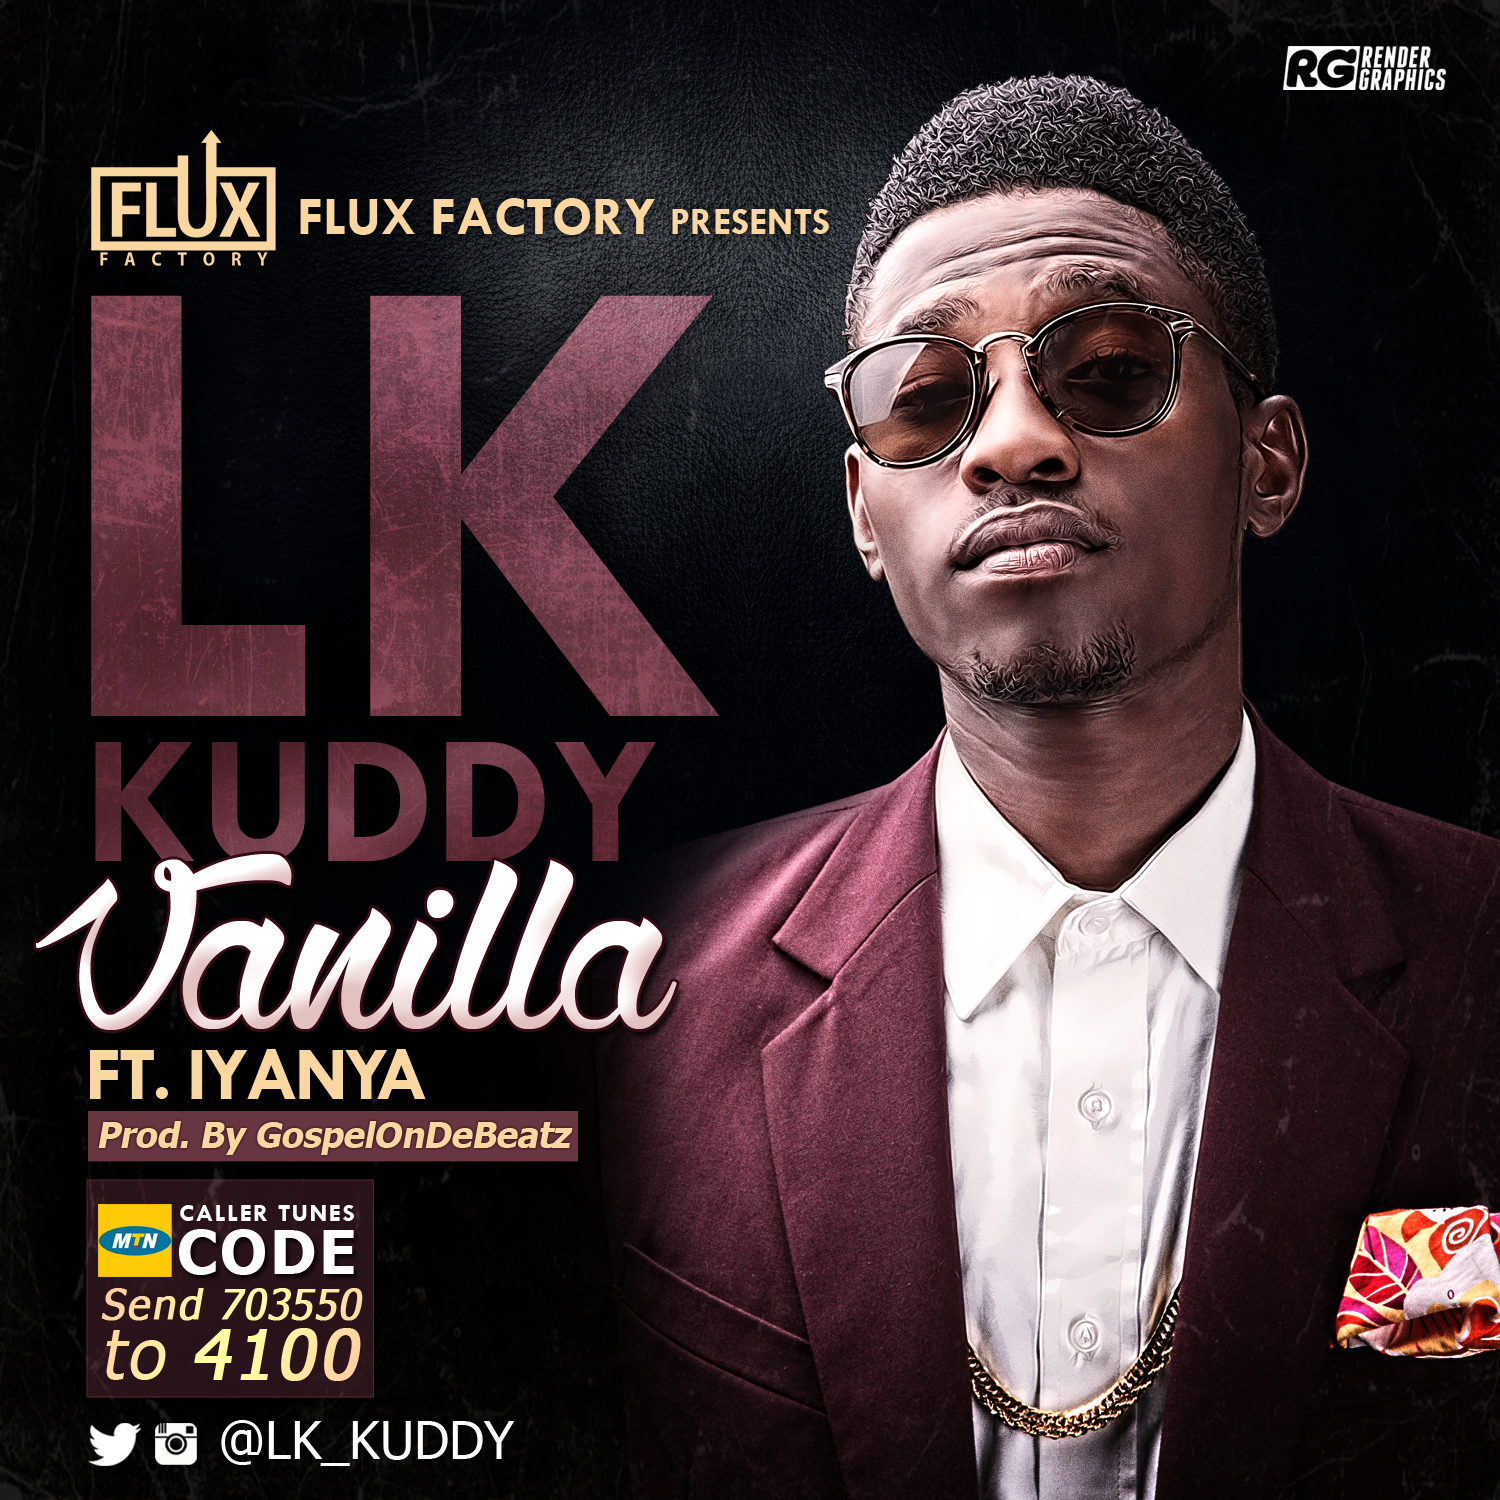 LK Kuddy - Vanilla ft. Iyanya-ART